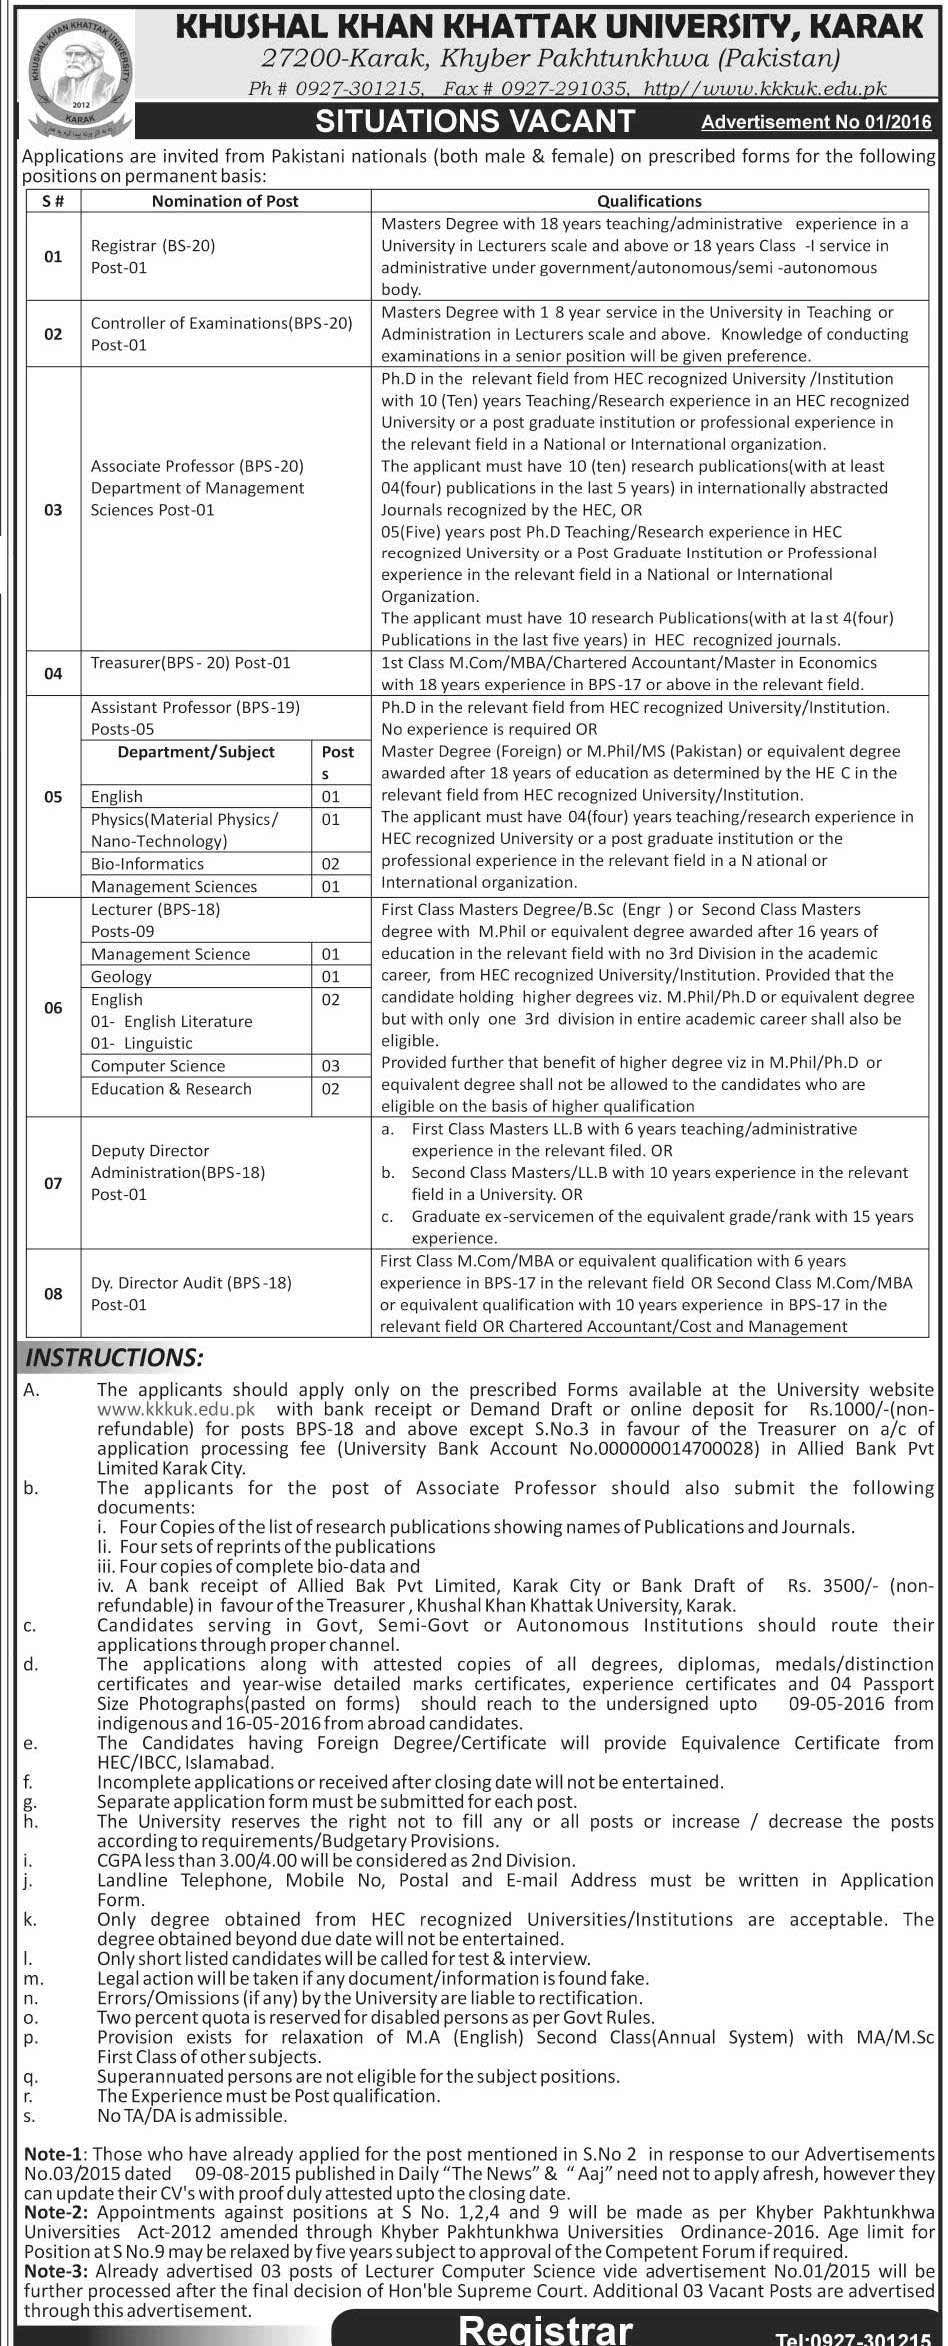 Khushal Khan Khattak University Karak Jobs 2016